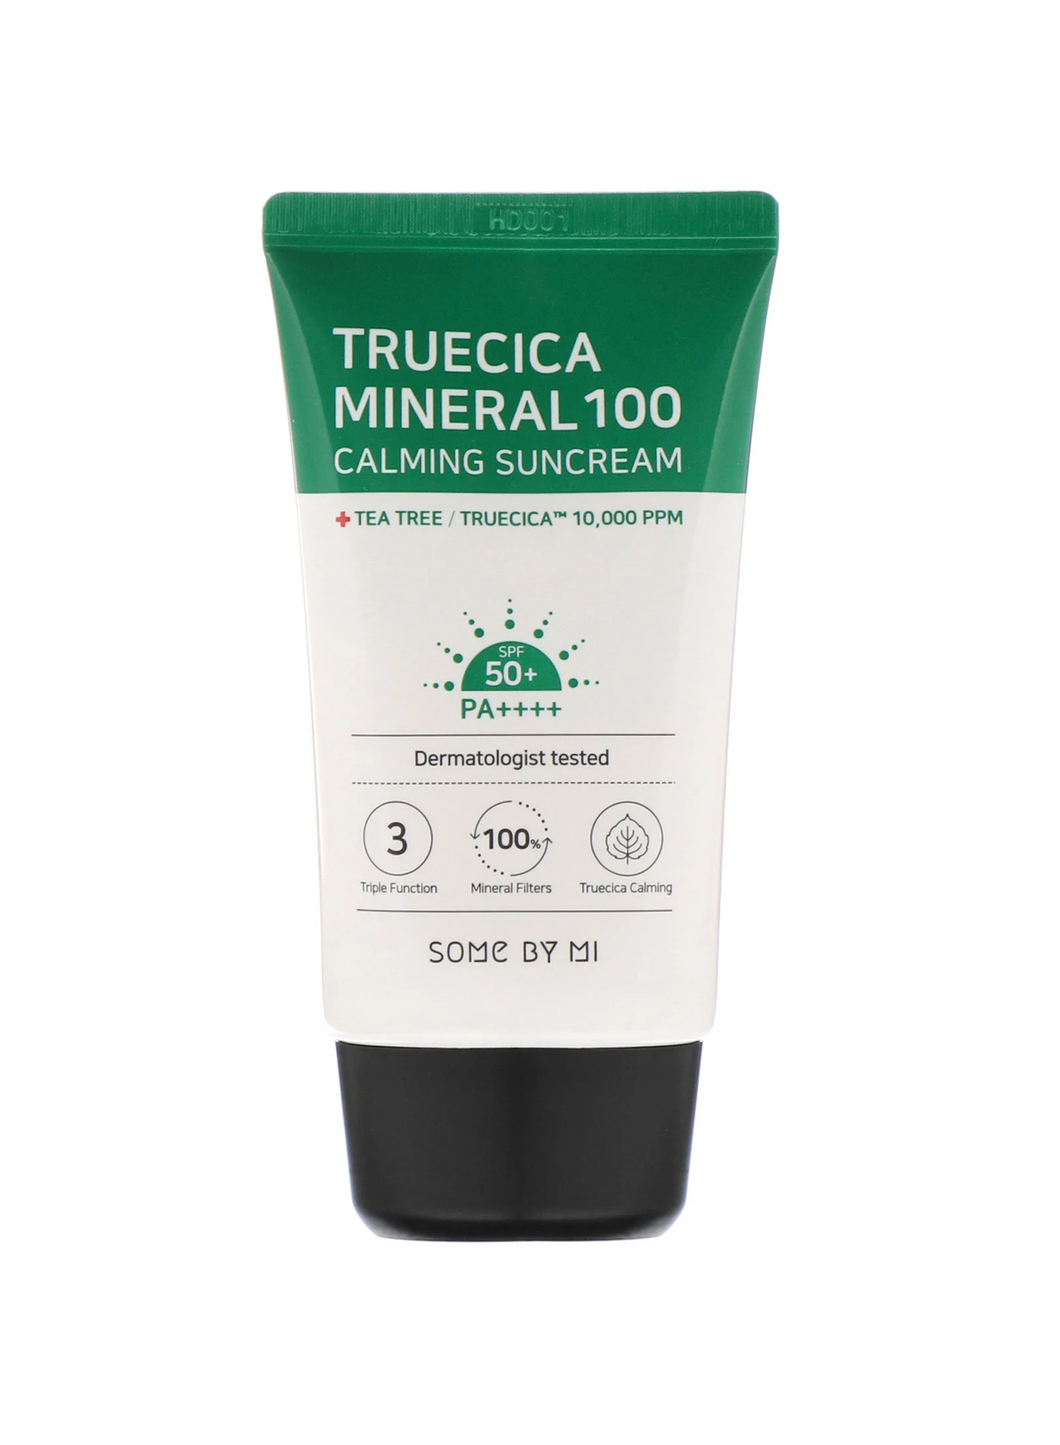 Truecica Mineral 100 Calming Suncream 50 SPF by Some By Mi in UAE